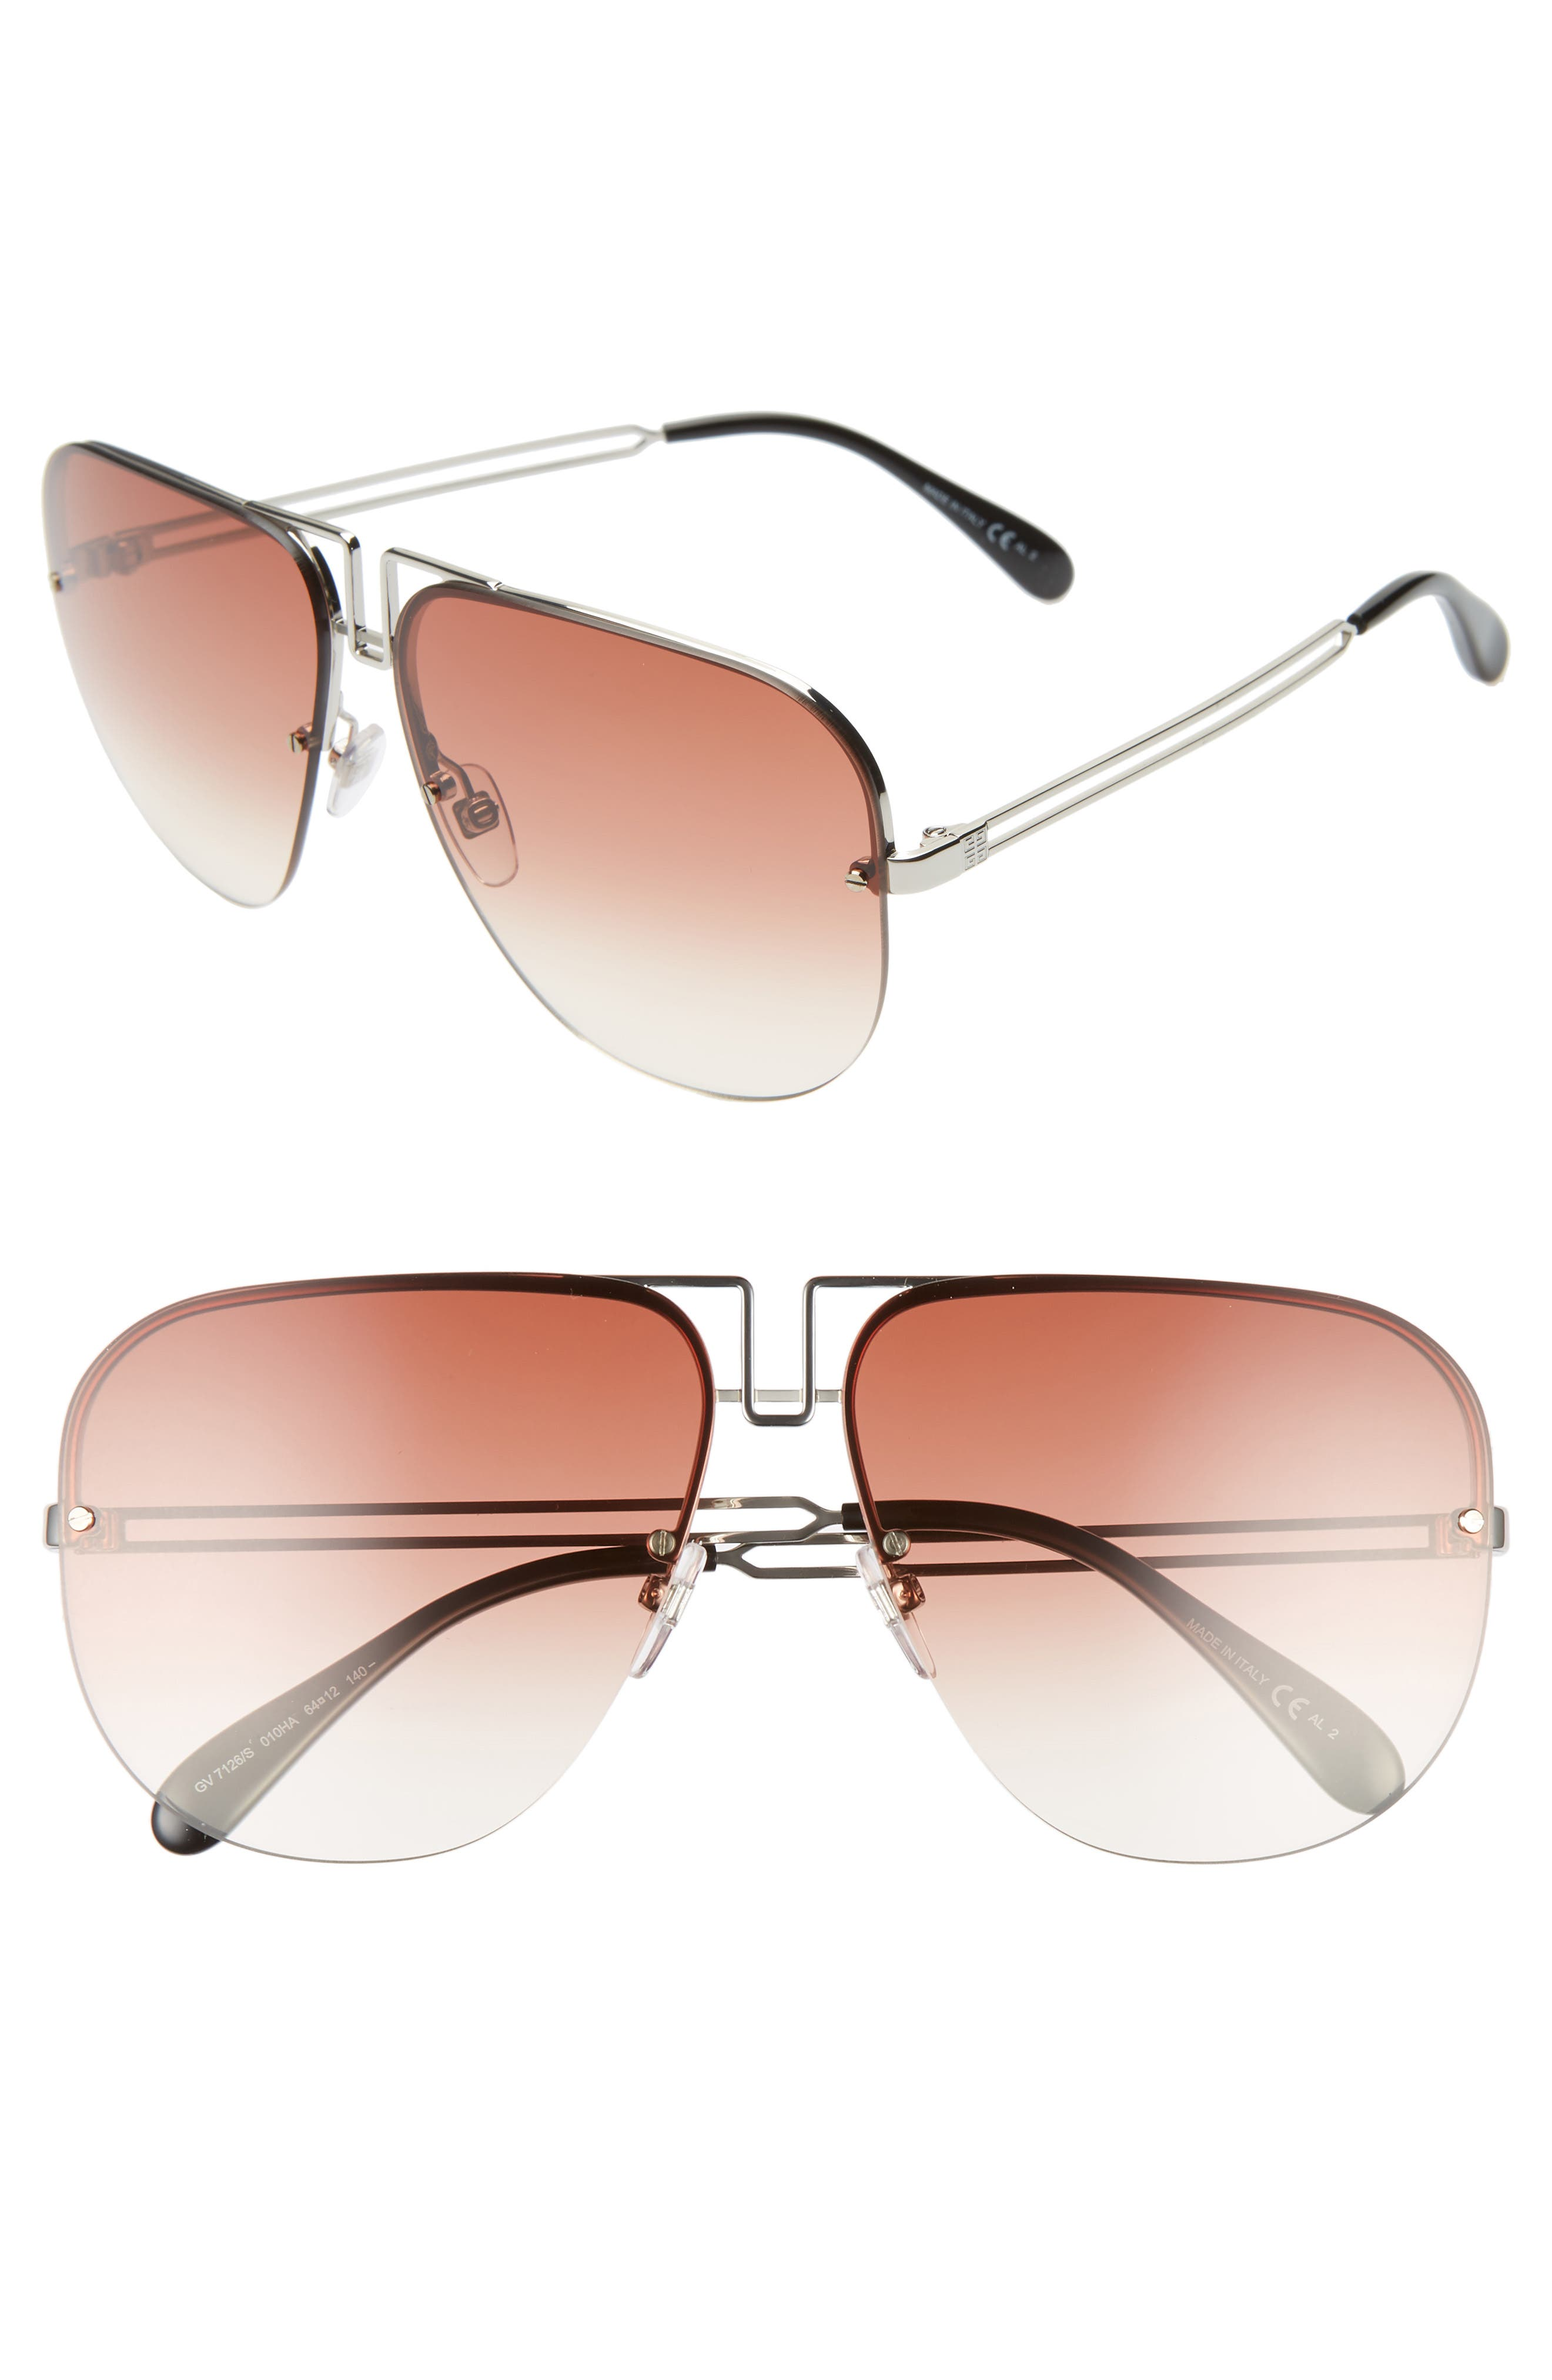 GIVENCHY,                             64mm Oversize Aviator Sunglasses,                             Main thumbnail 1, color,                             PALLADIUM/ COPPER